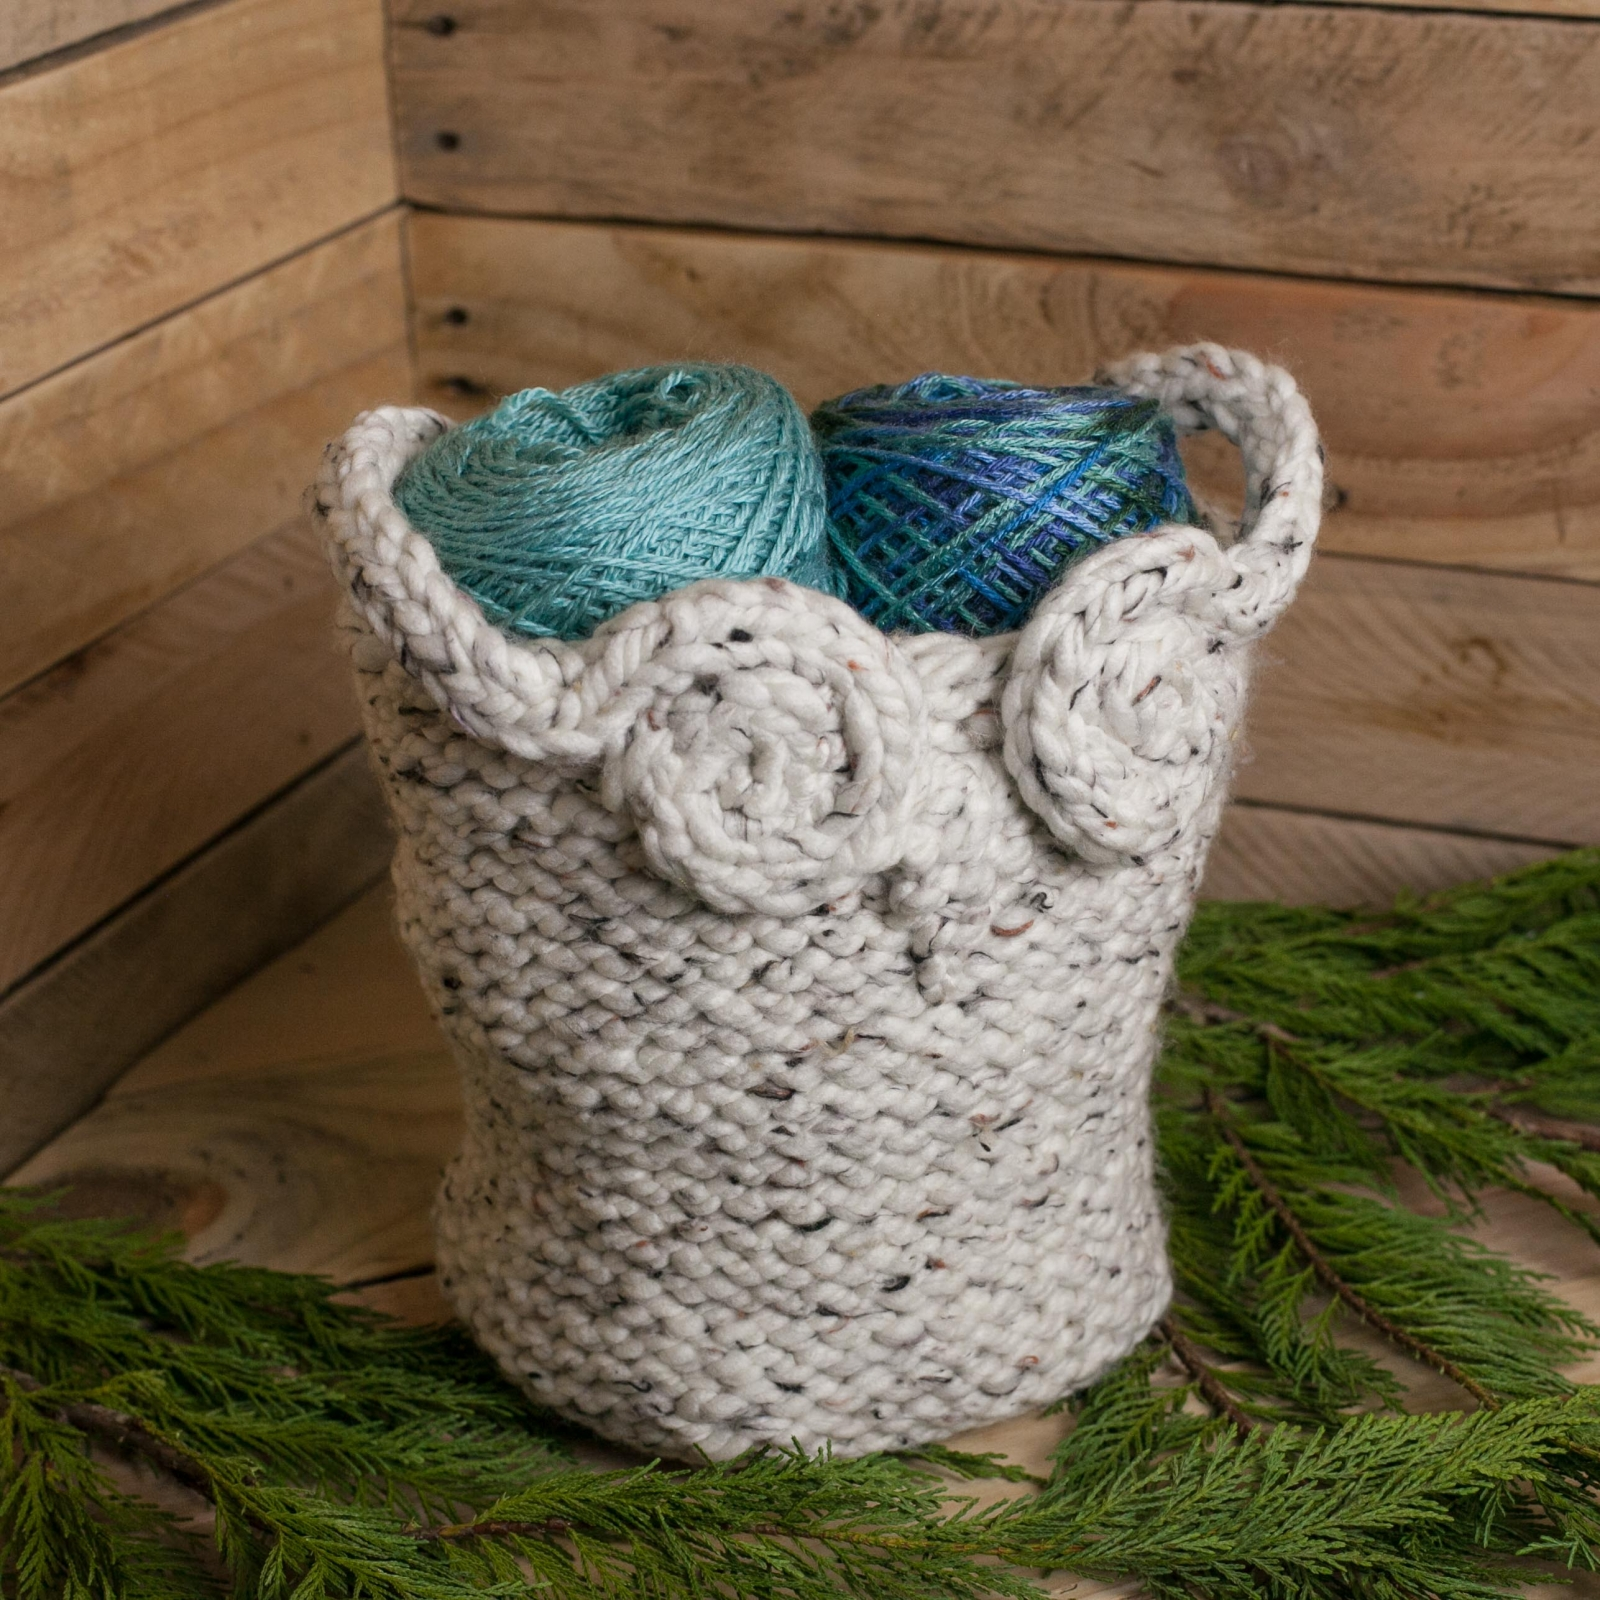 Knitting Basket Yarn : Loom knit owl basket pattern yarn catch all